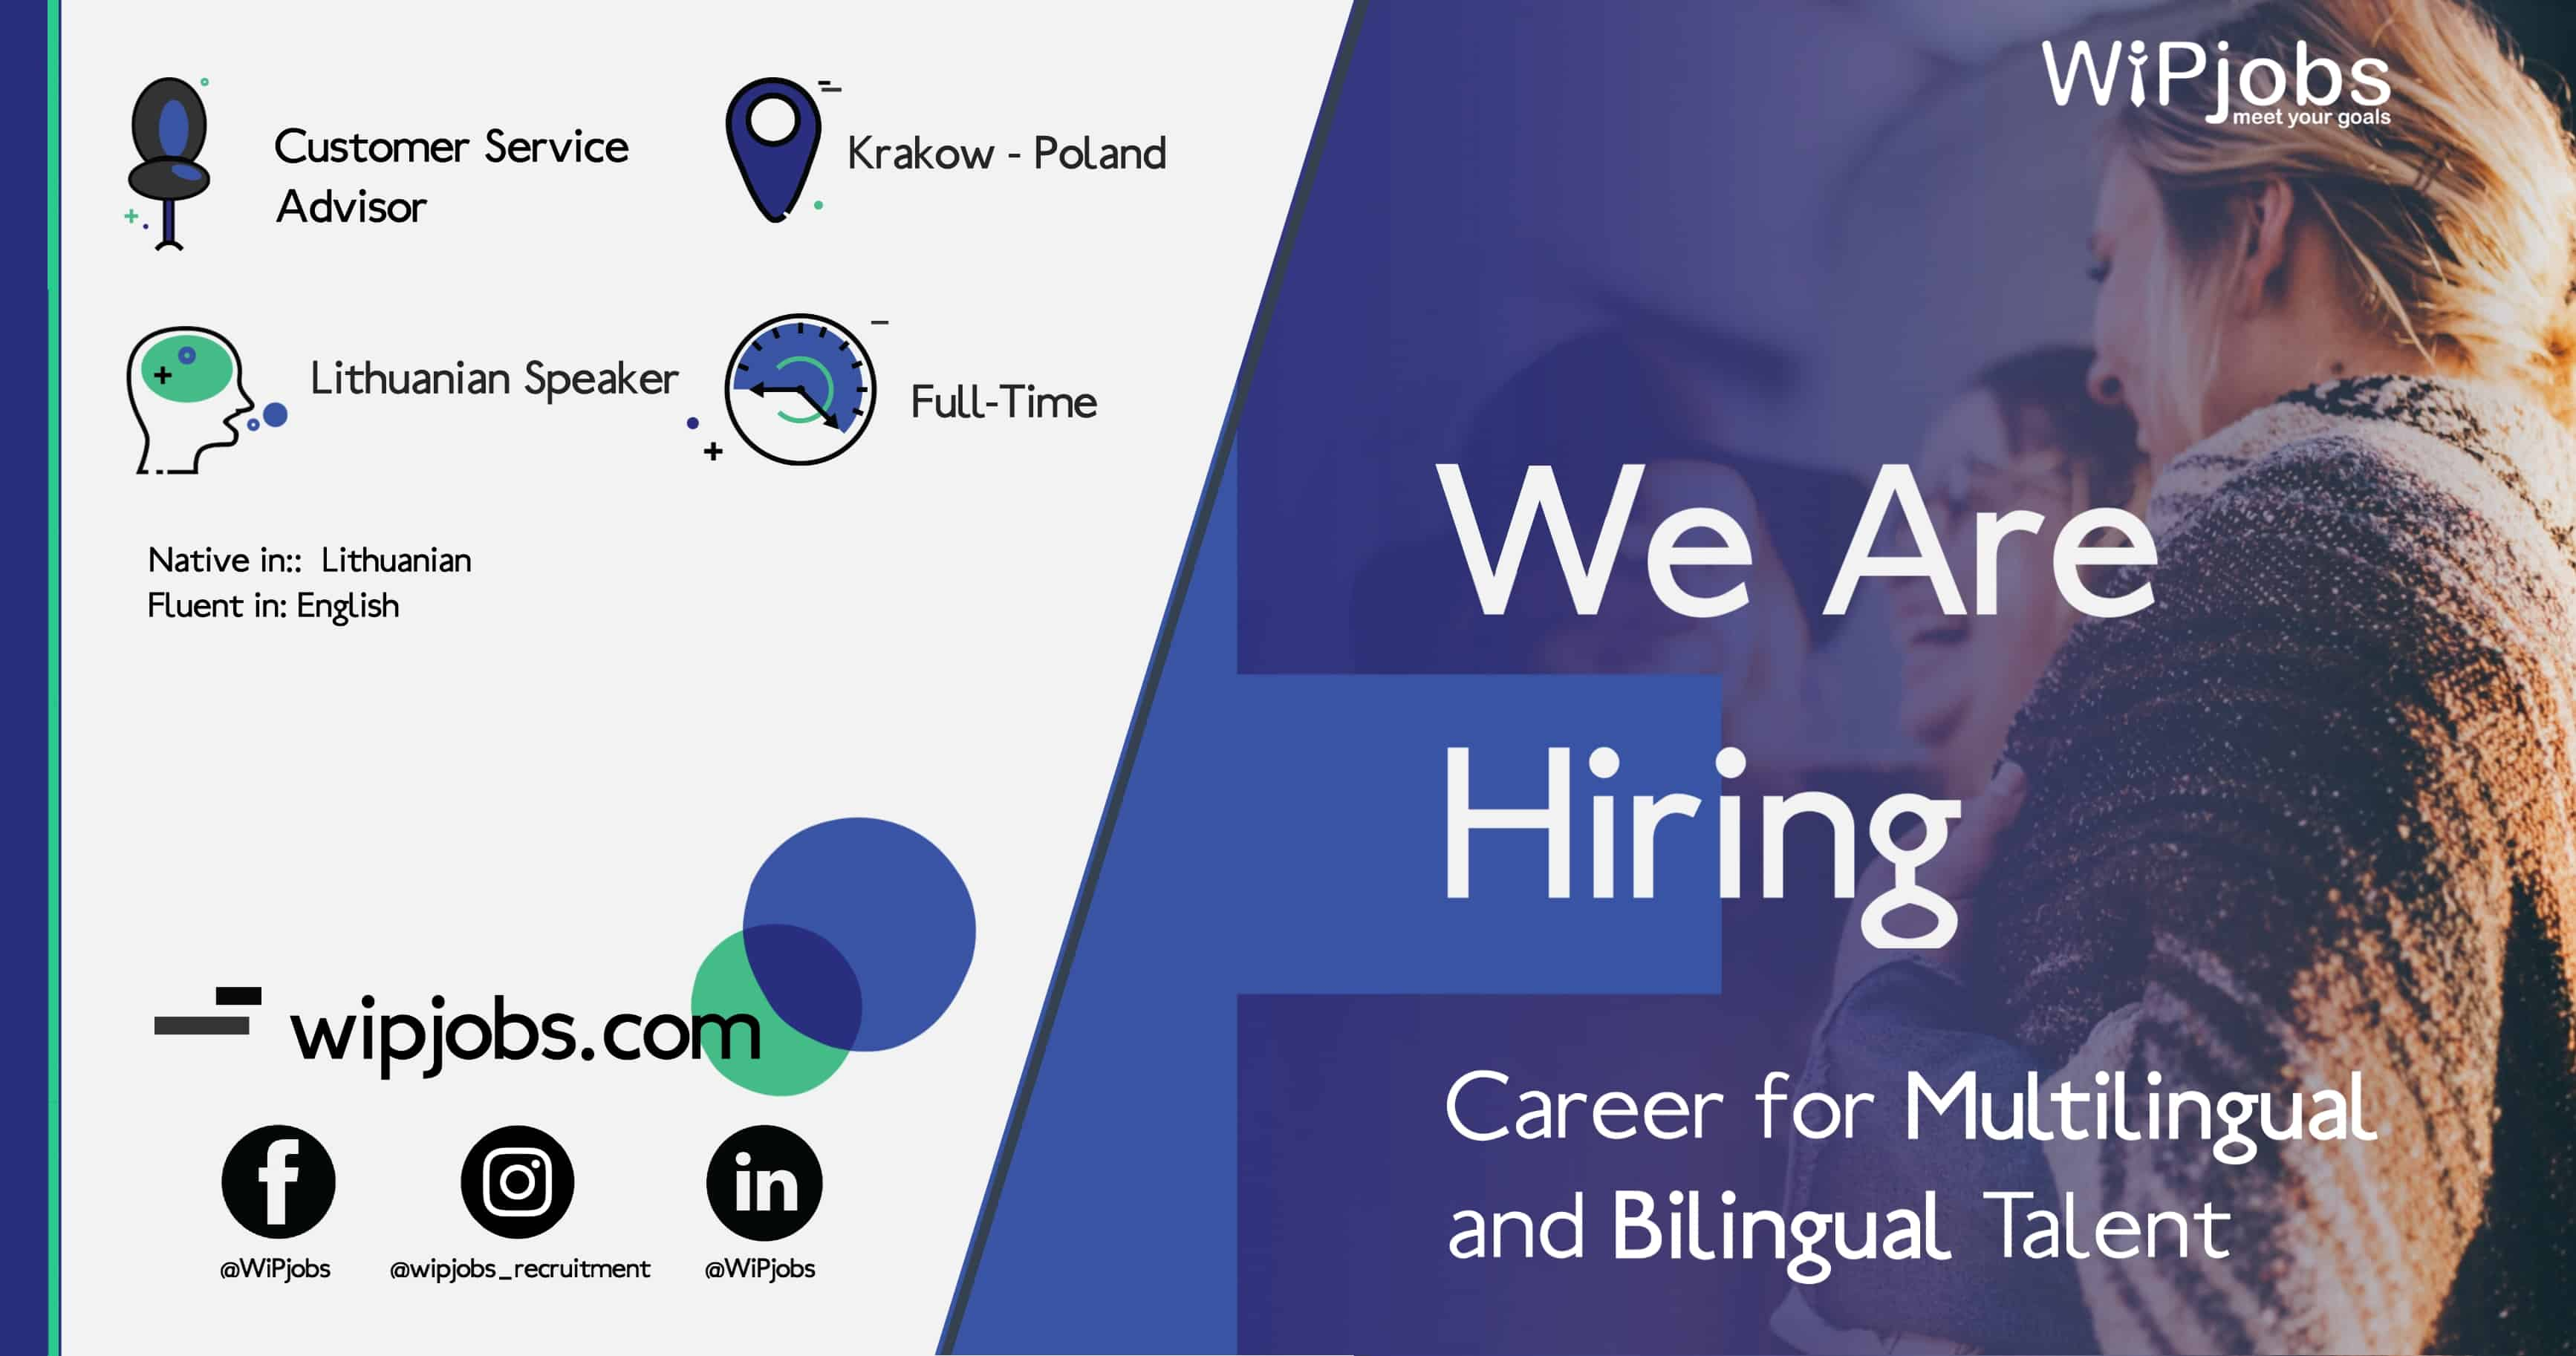 Customer-Service-Advisor-LITHUANIAN-Speaker